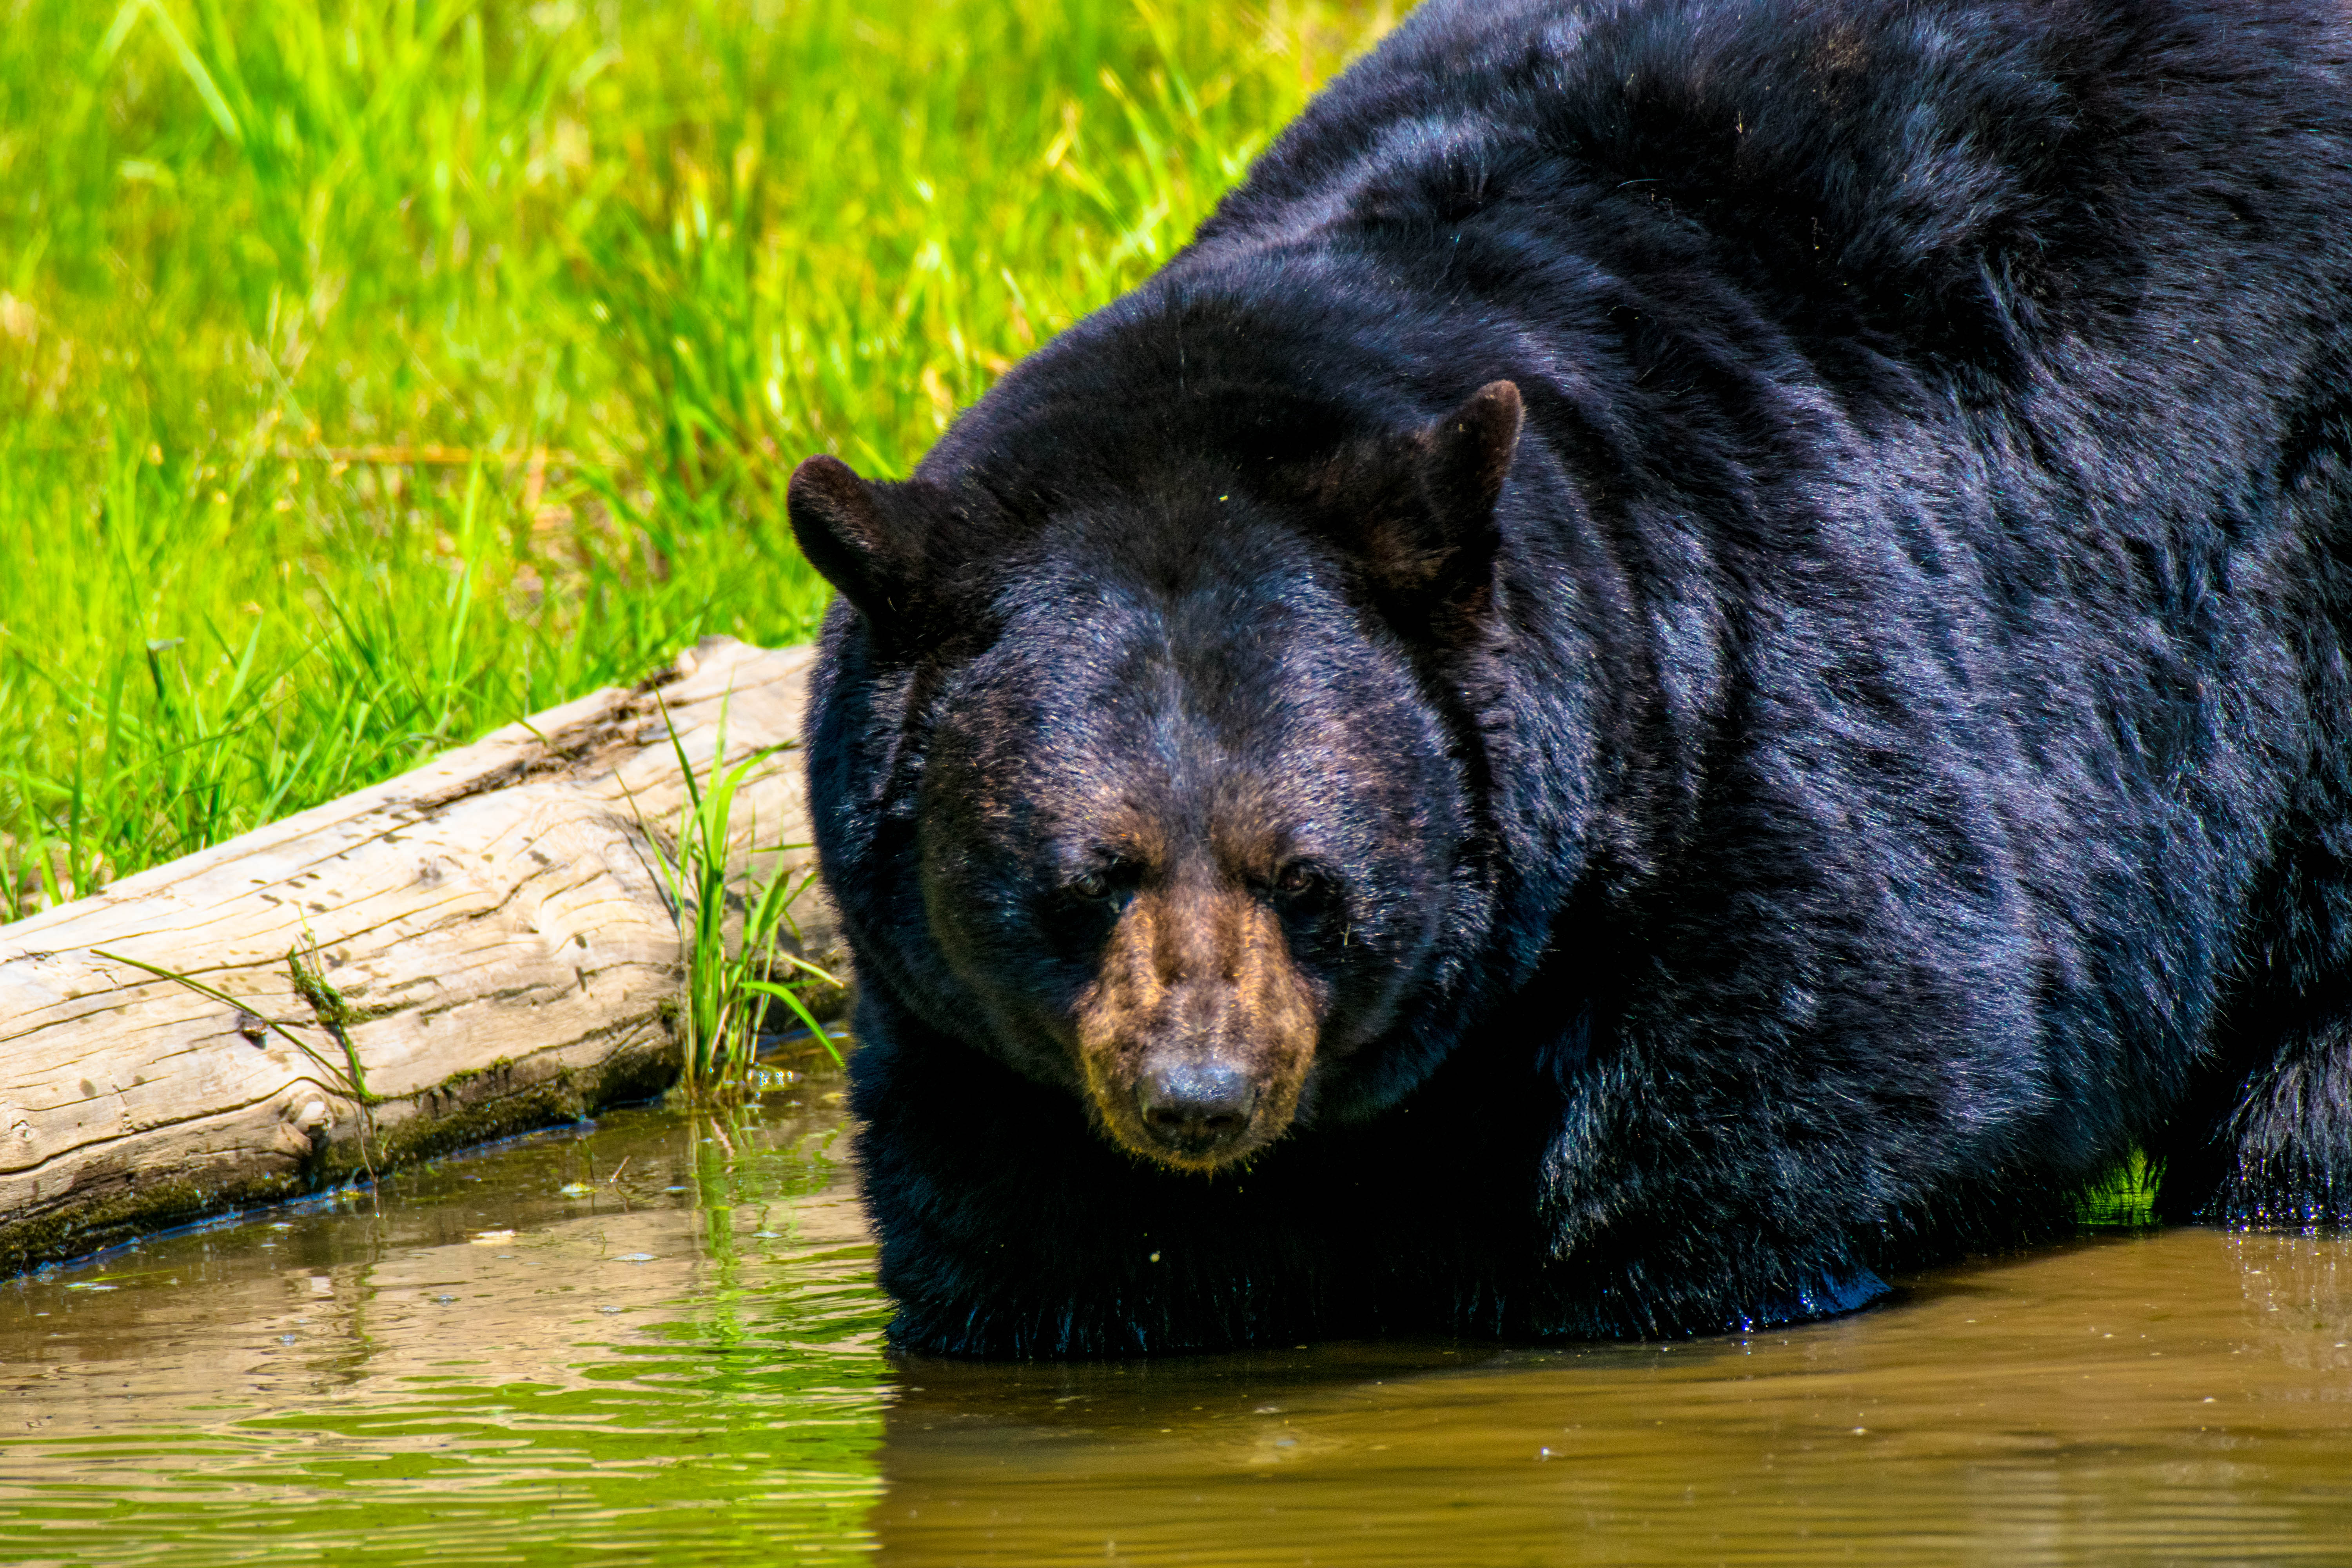 Black bear in the water on a summers day at Parc Omega